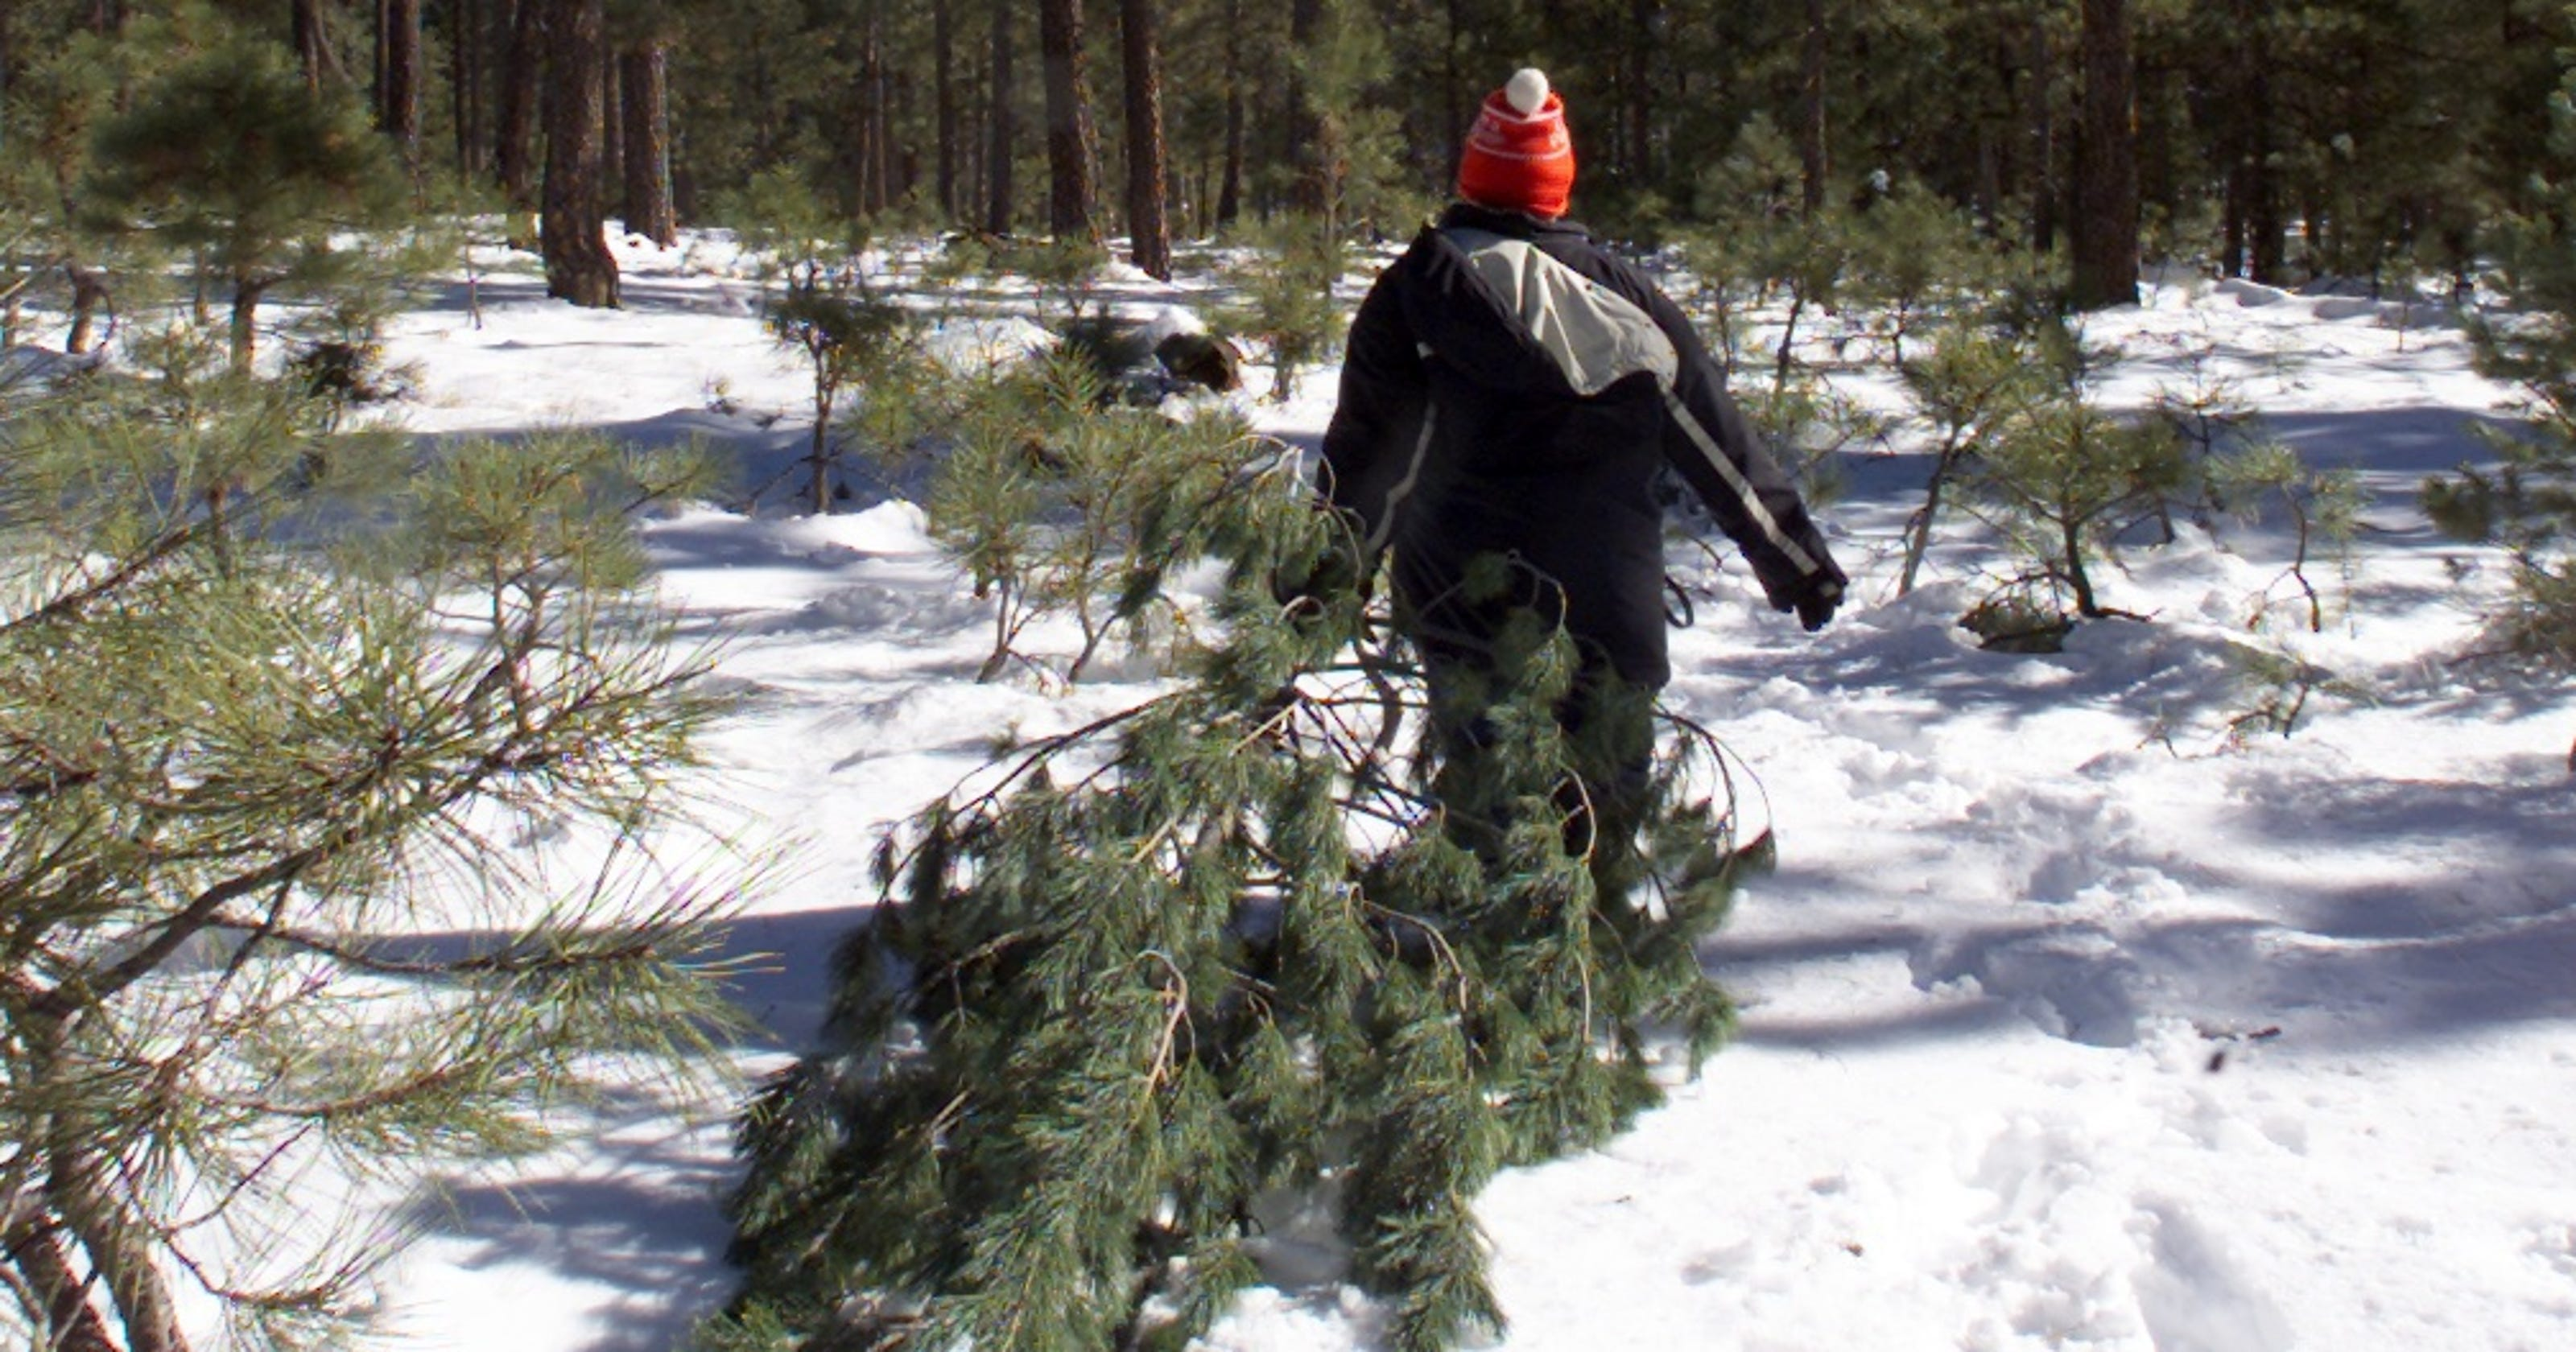 Arizona Christmas Tree Permits 2019 Here's how to get a permit for cutting a holiday tree in AZ forests.